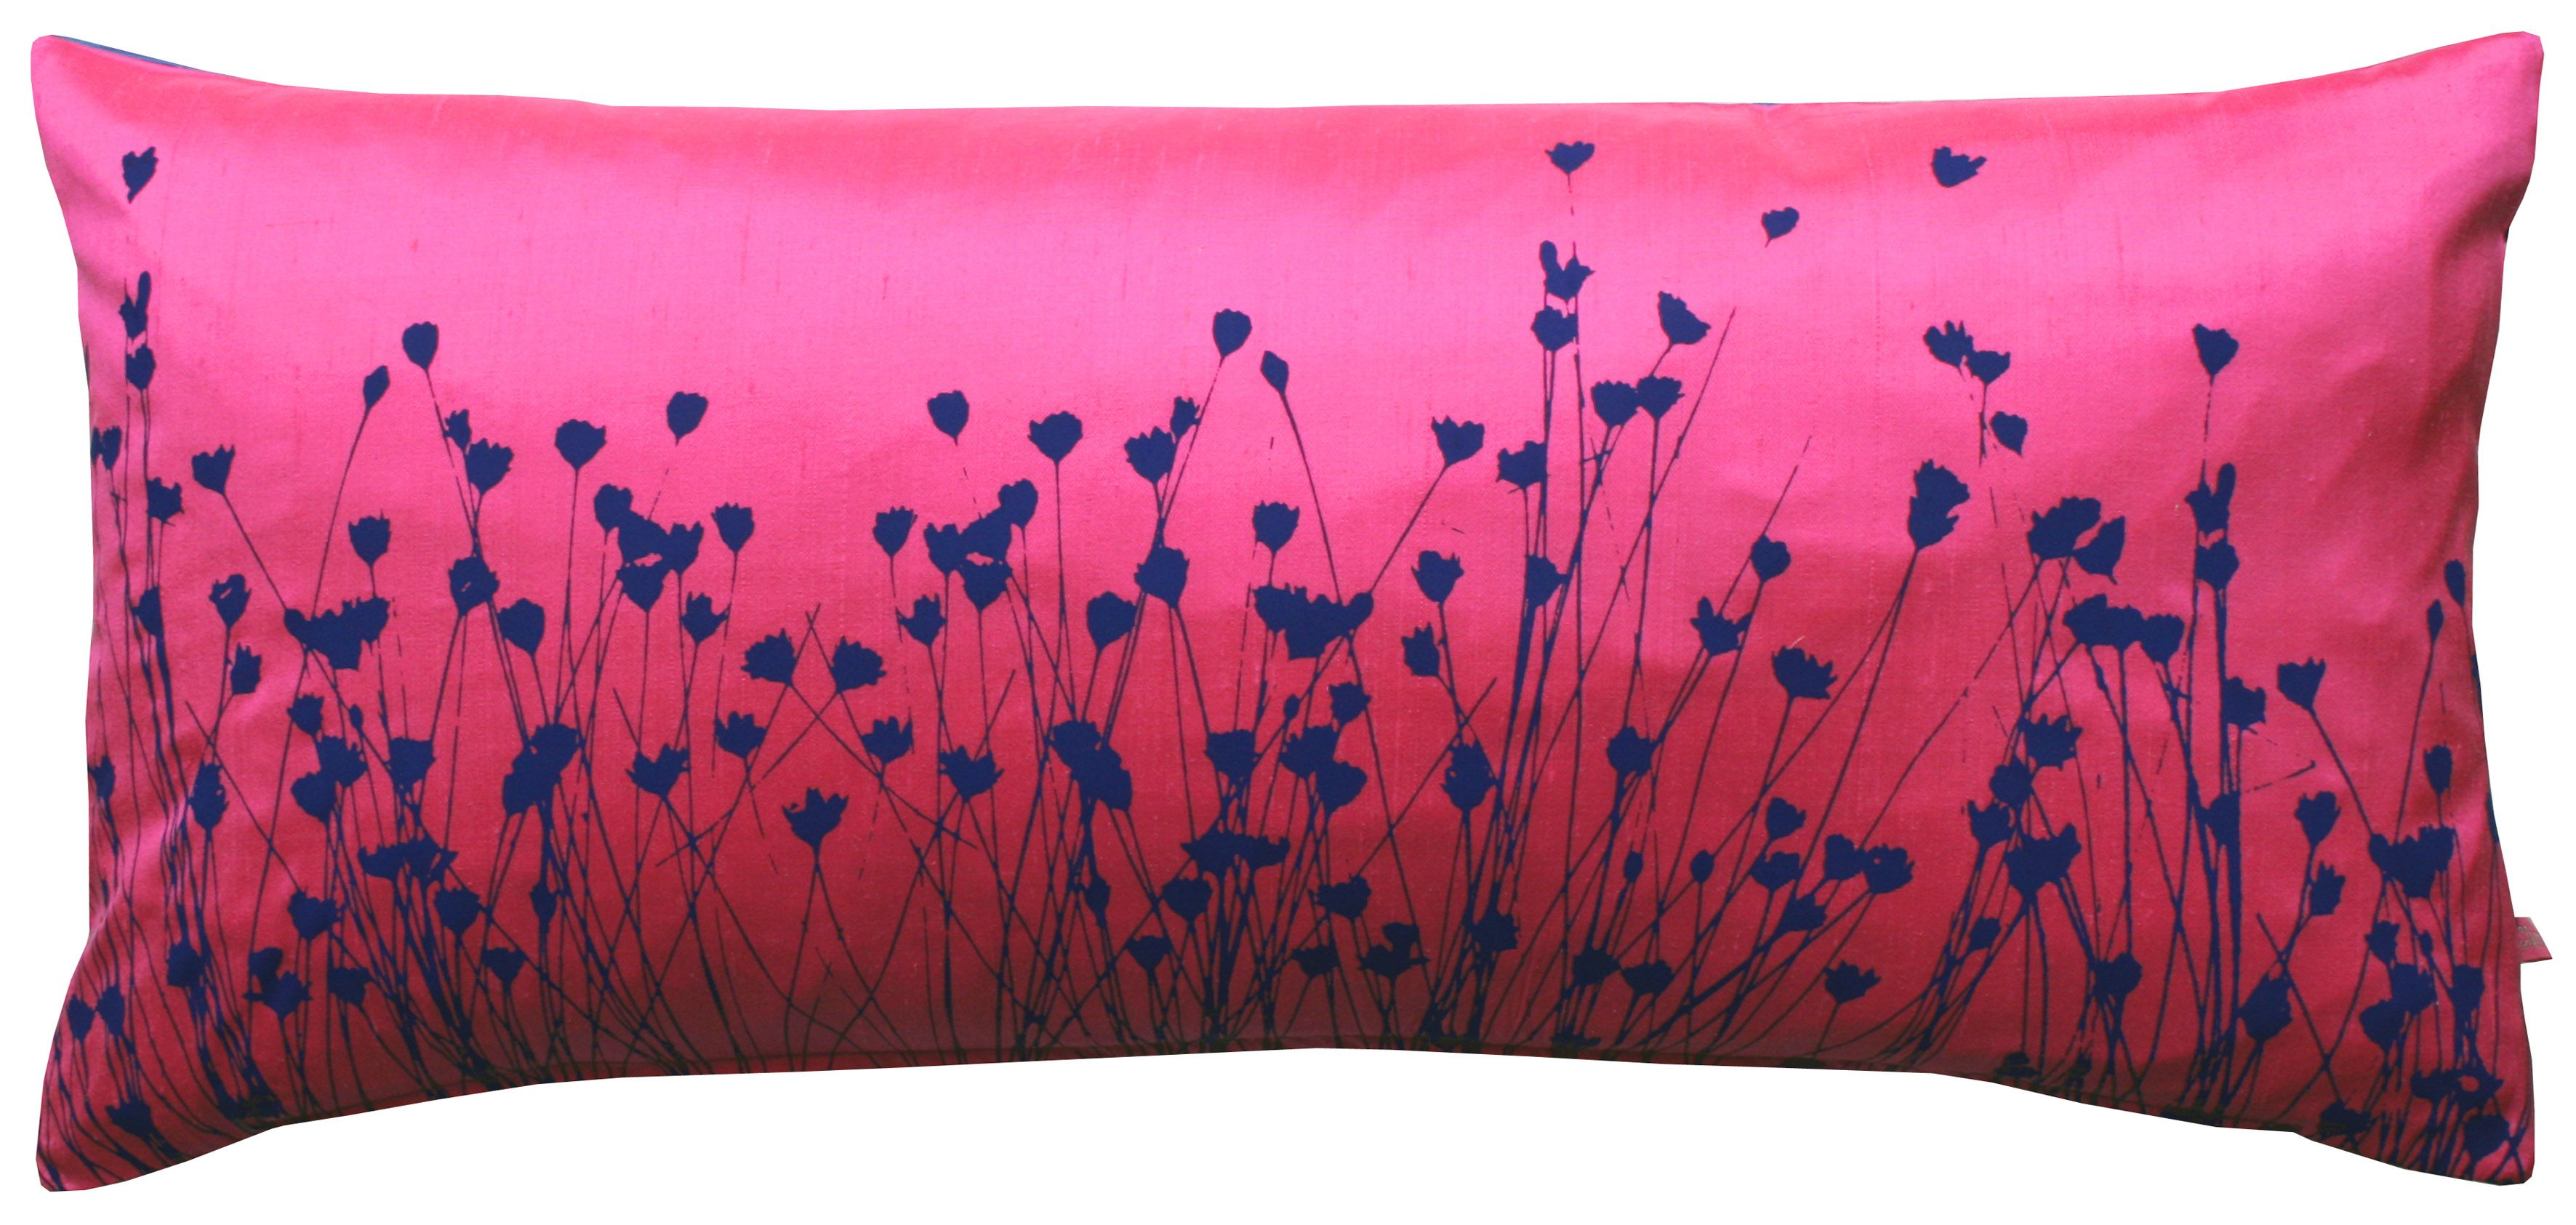 Clarissa Hulse Klimt grass cushion